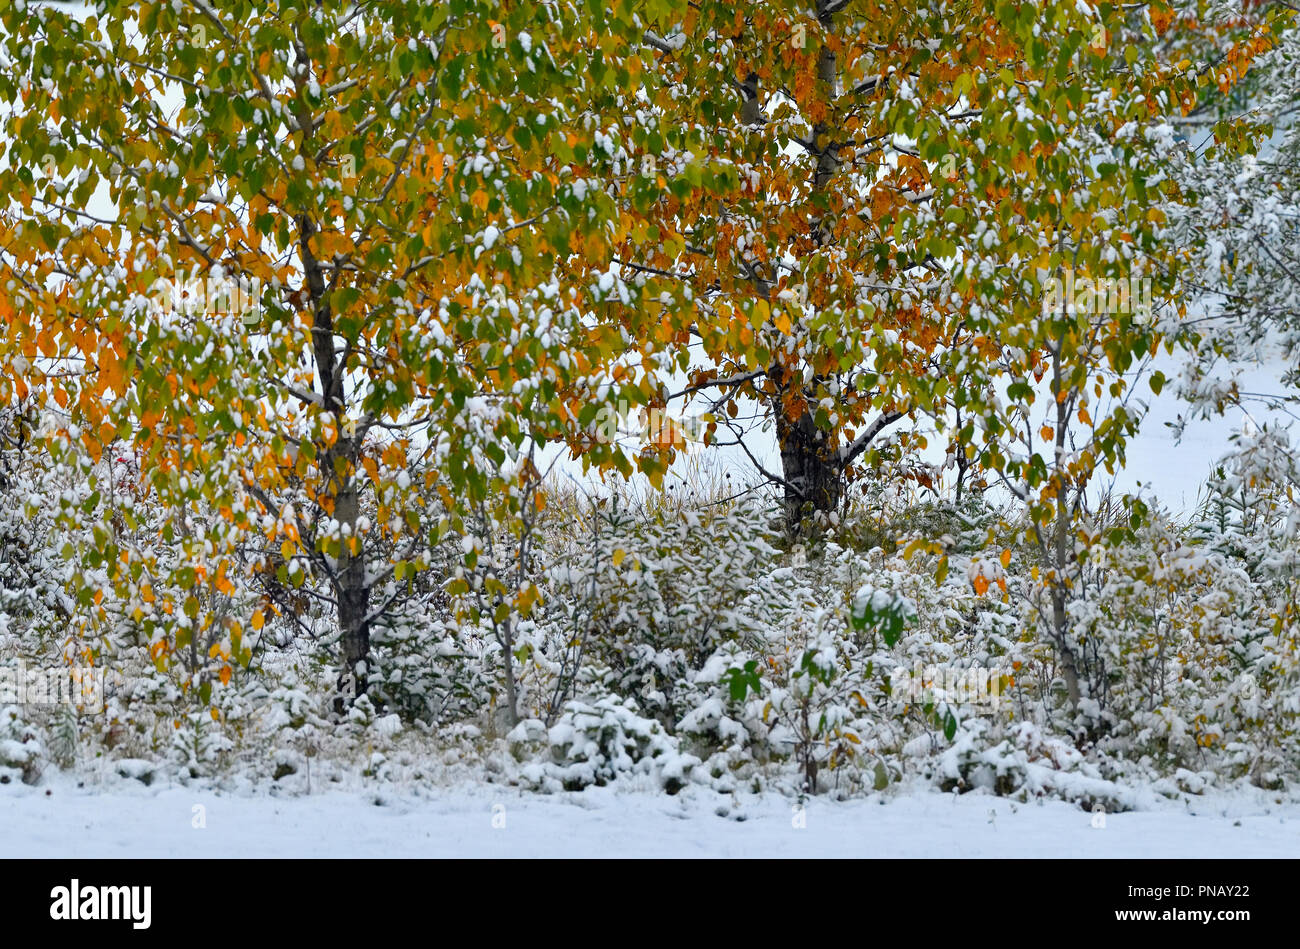 A horizontal nature image of the first September snow falling on colorful leaves of a deciduous tree in rural Alberta Canada. - Stock Image